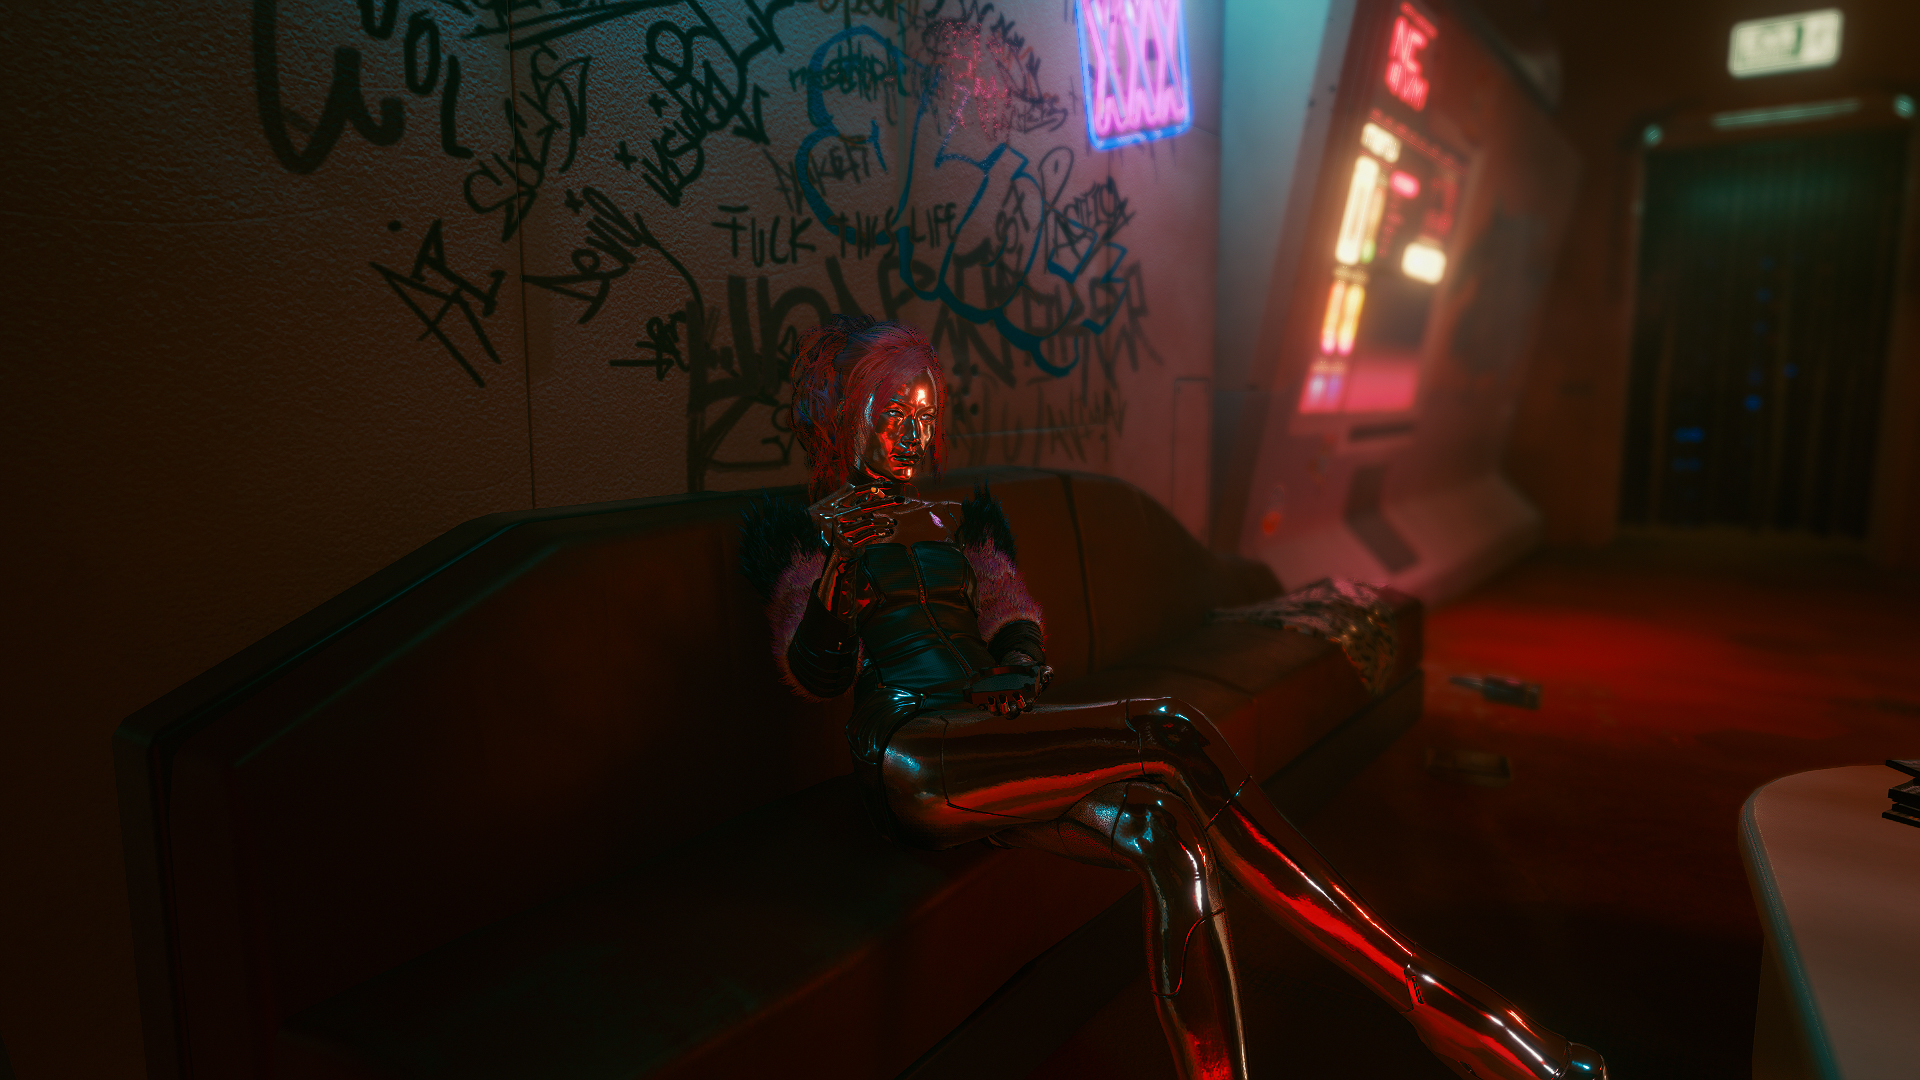 How To Complete Cyberpunk 2077 Violence mission?